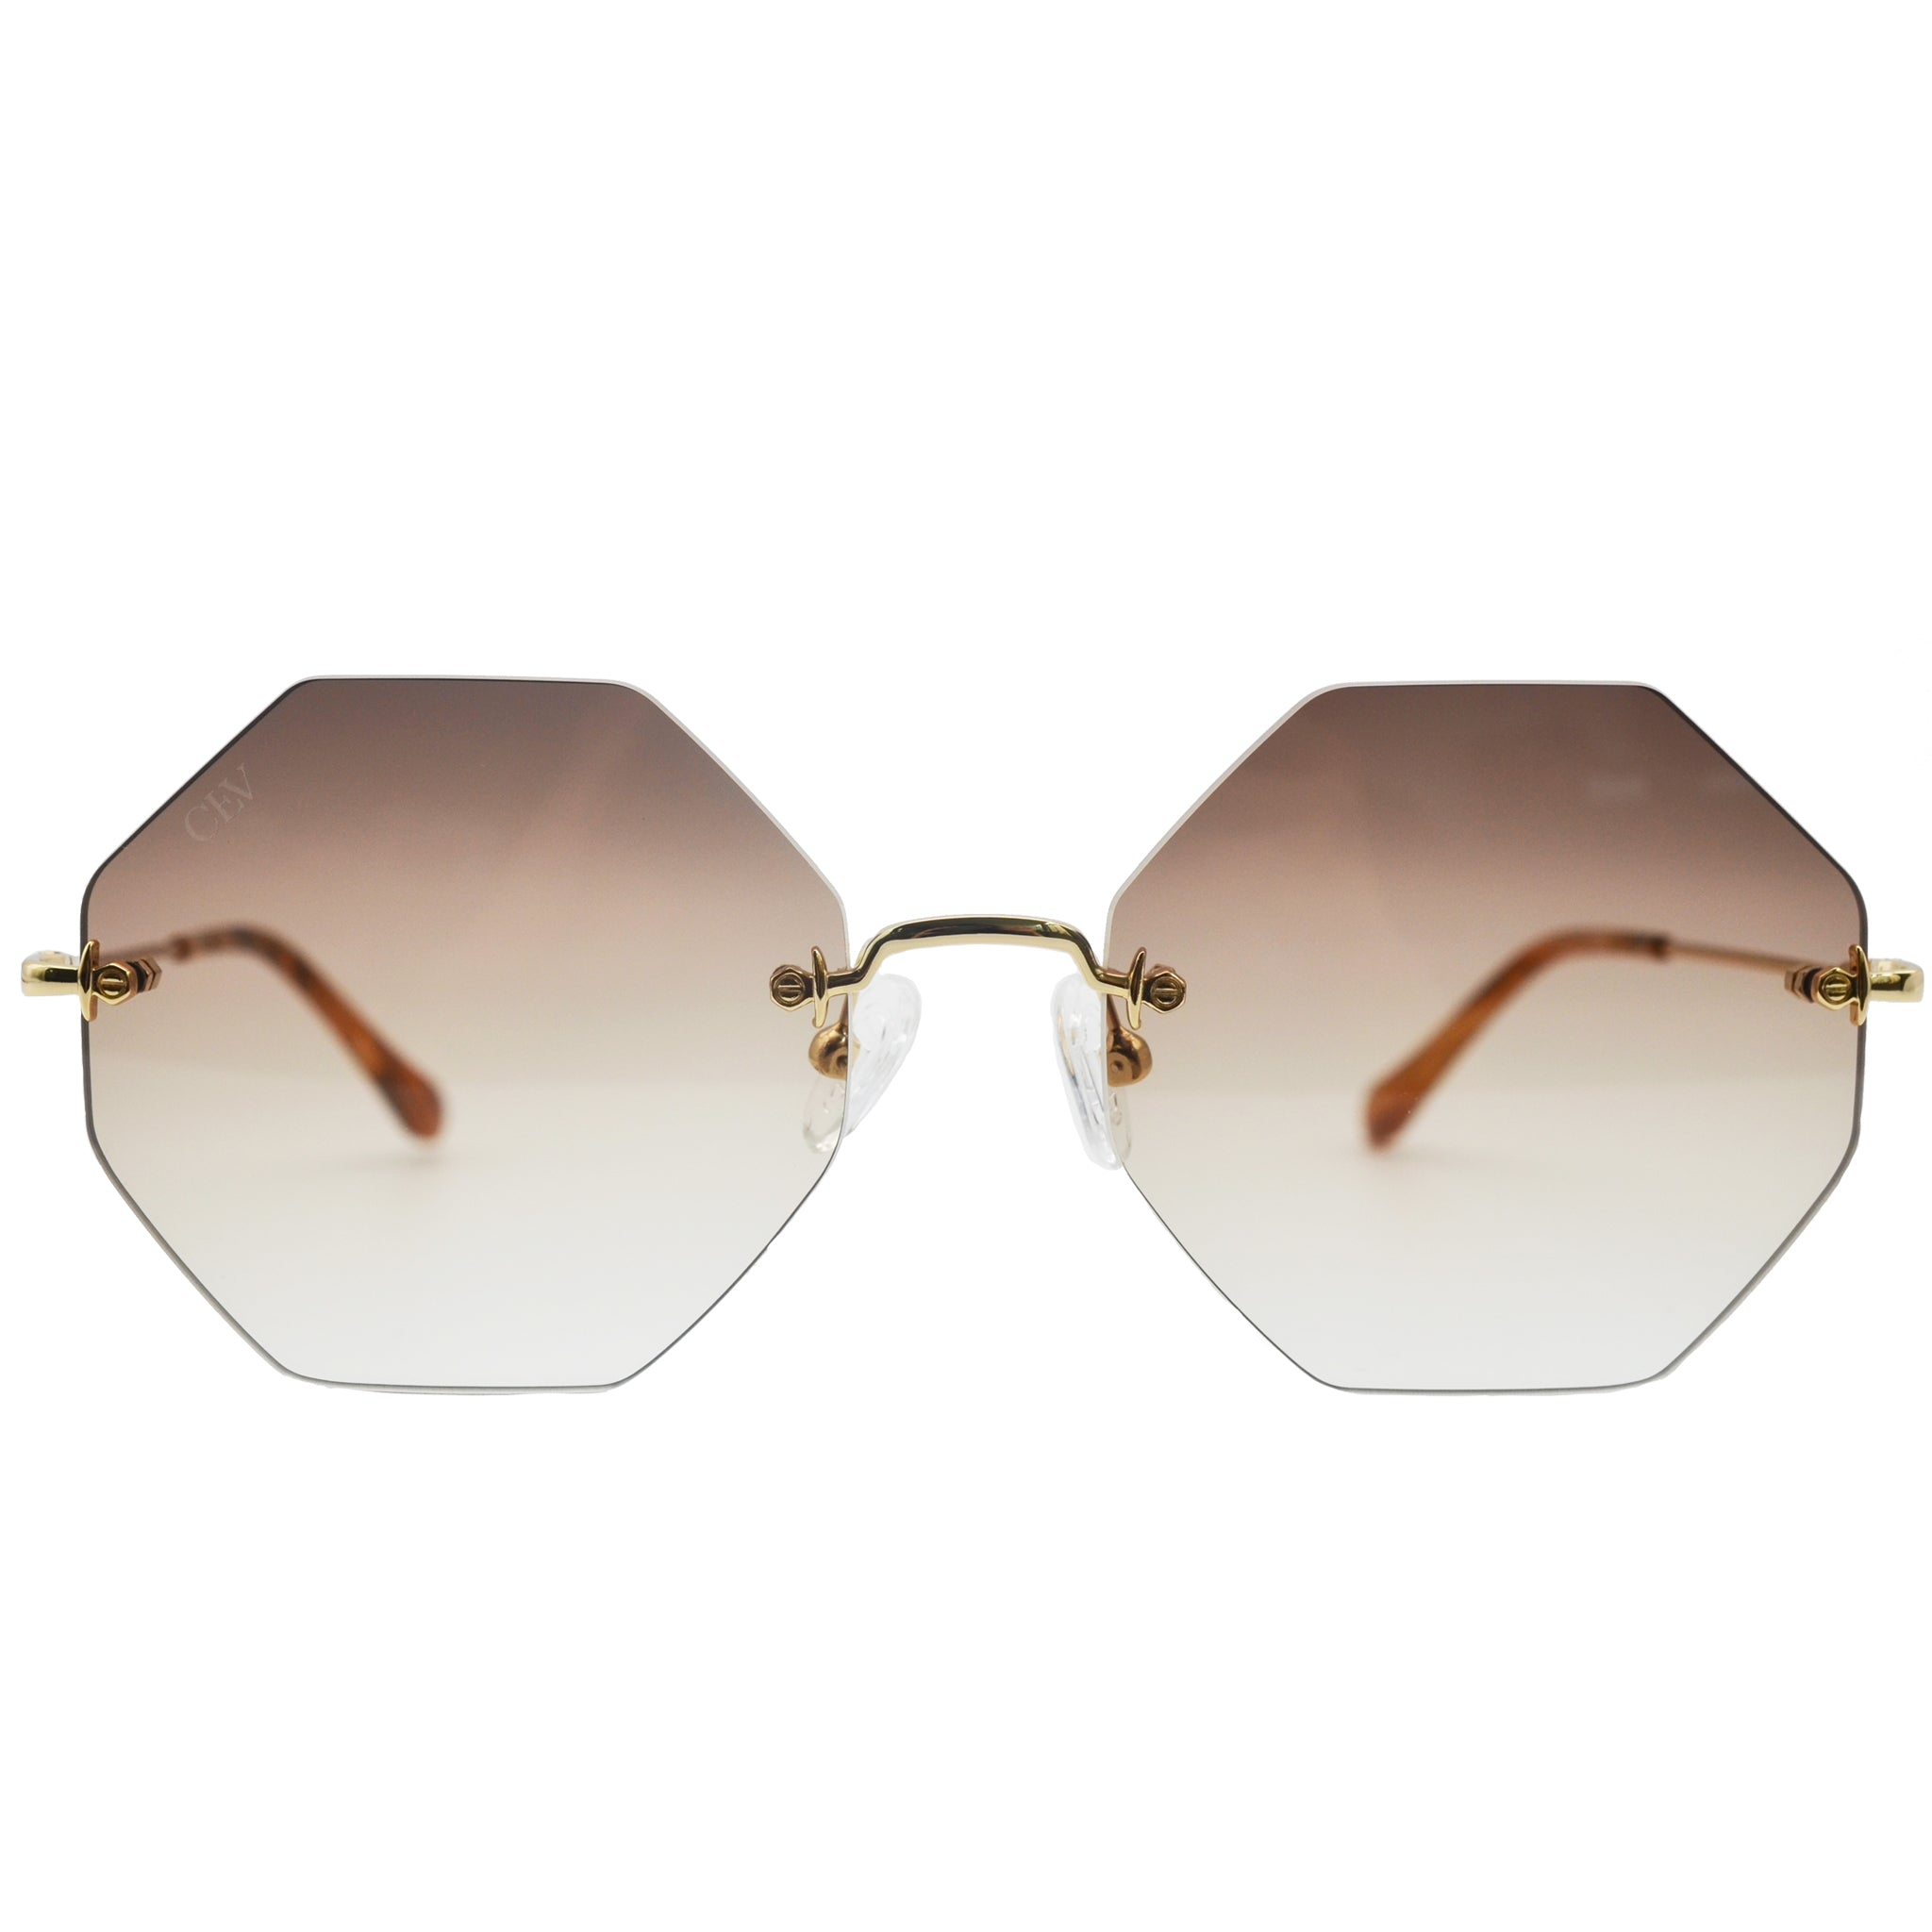 Rosè Brown sunglasses, cevcollection